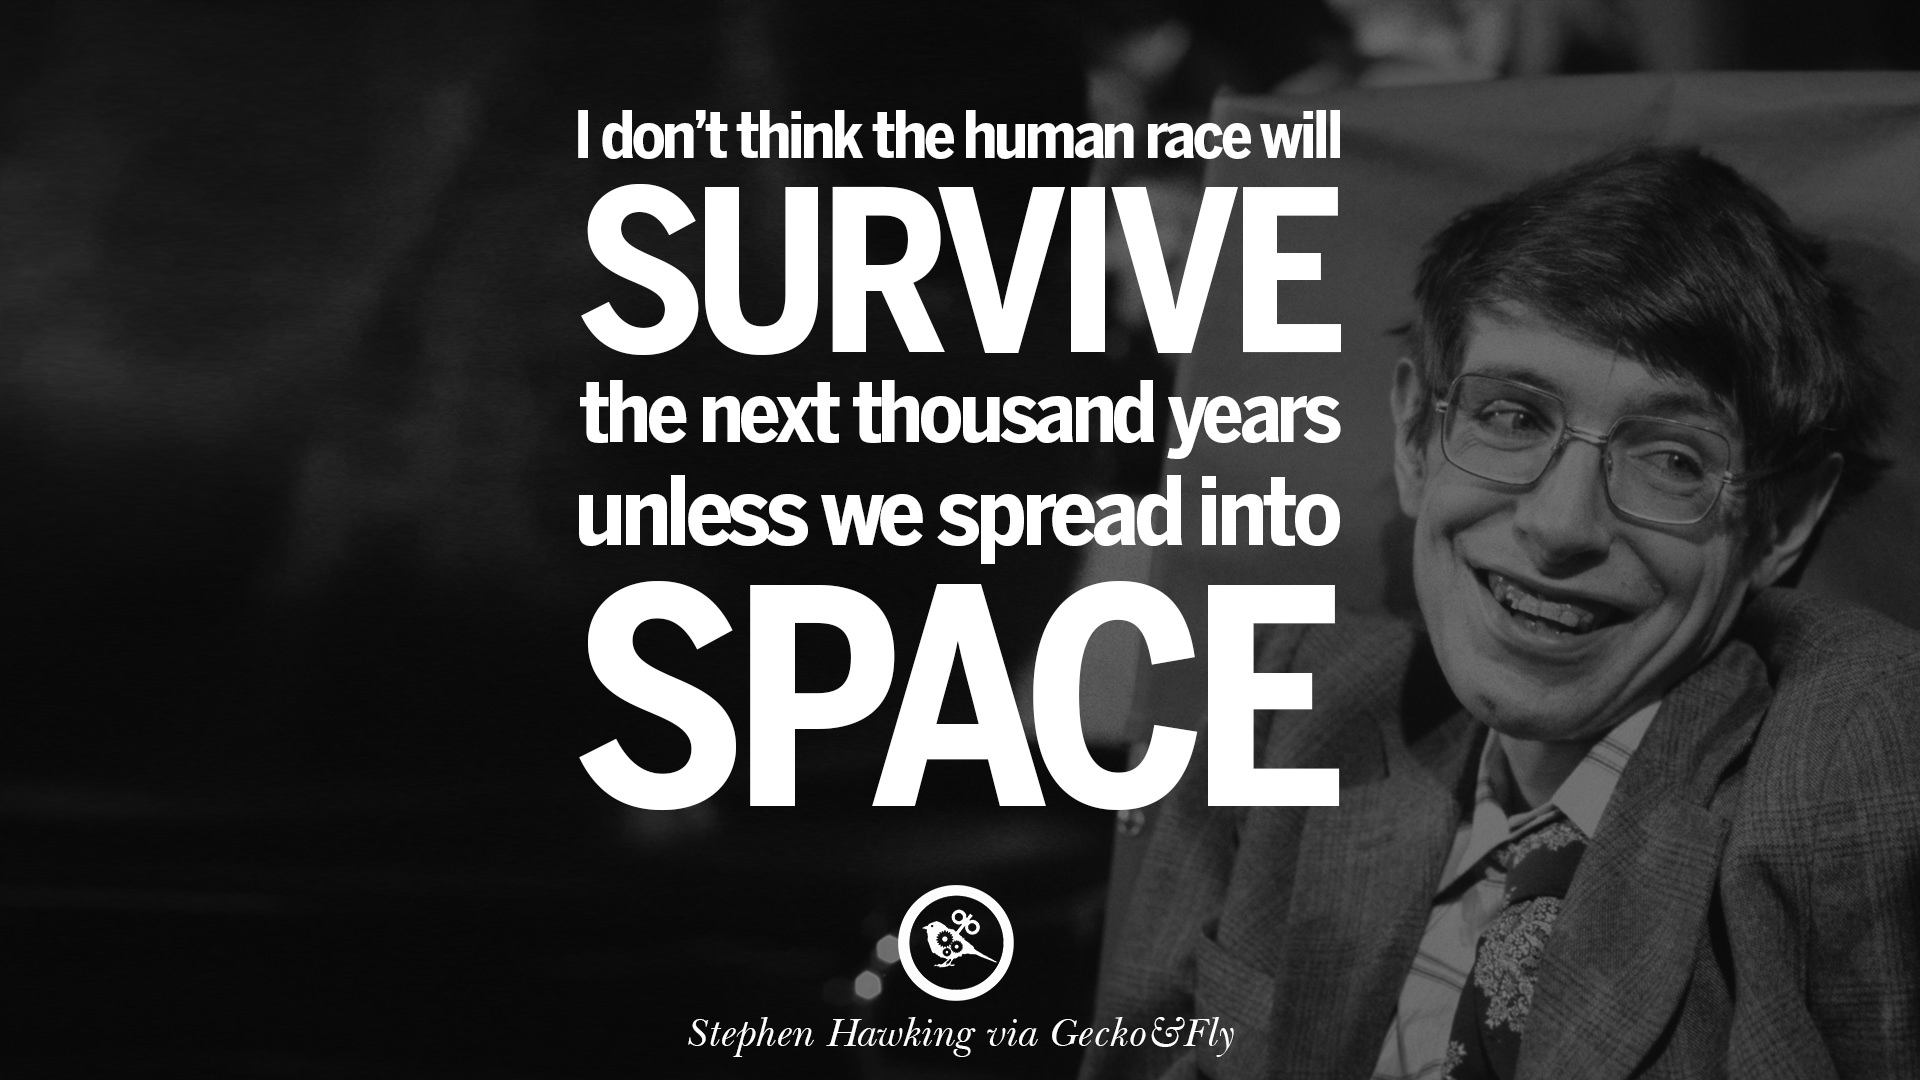 16 Quotes By Stephen Hawking On The Theory Of Everything From God To